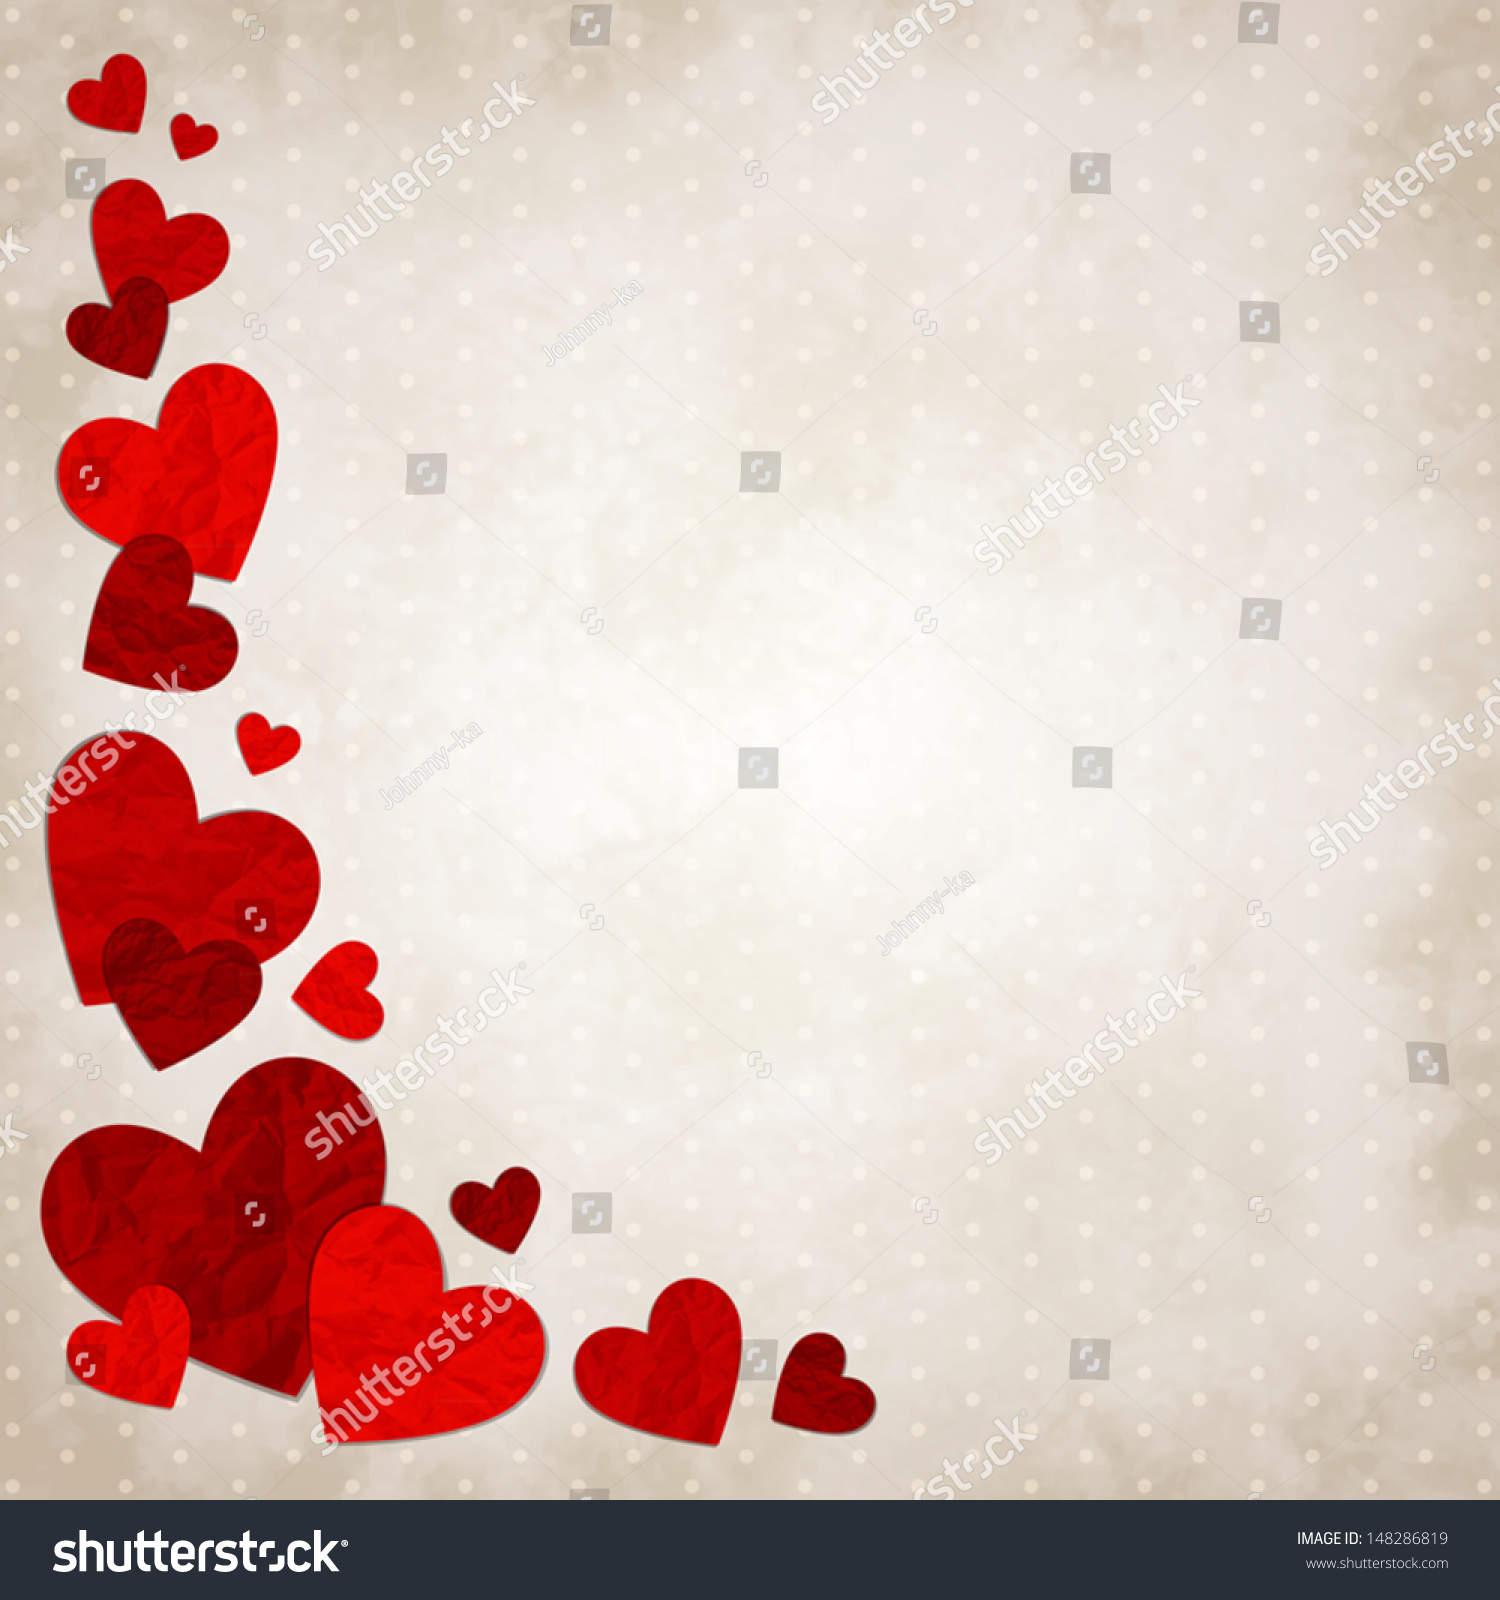 Vector Illustration Red Love Hearts On Image Vectorielle 148286819 - Shutterstock